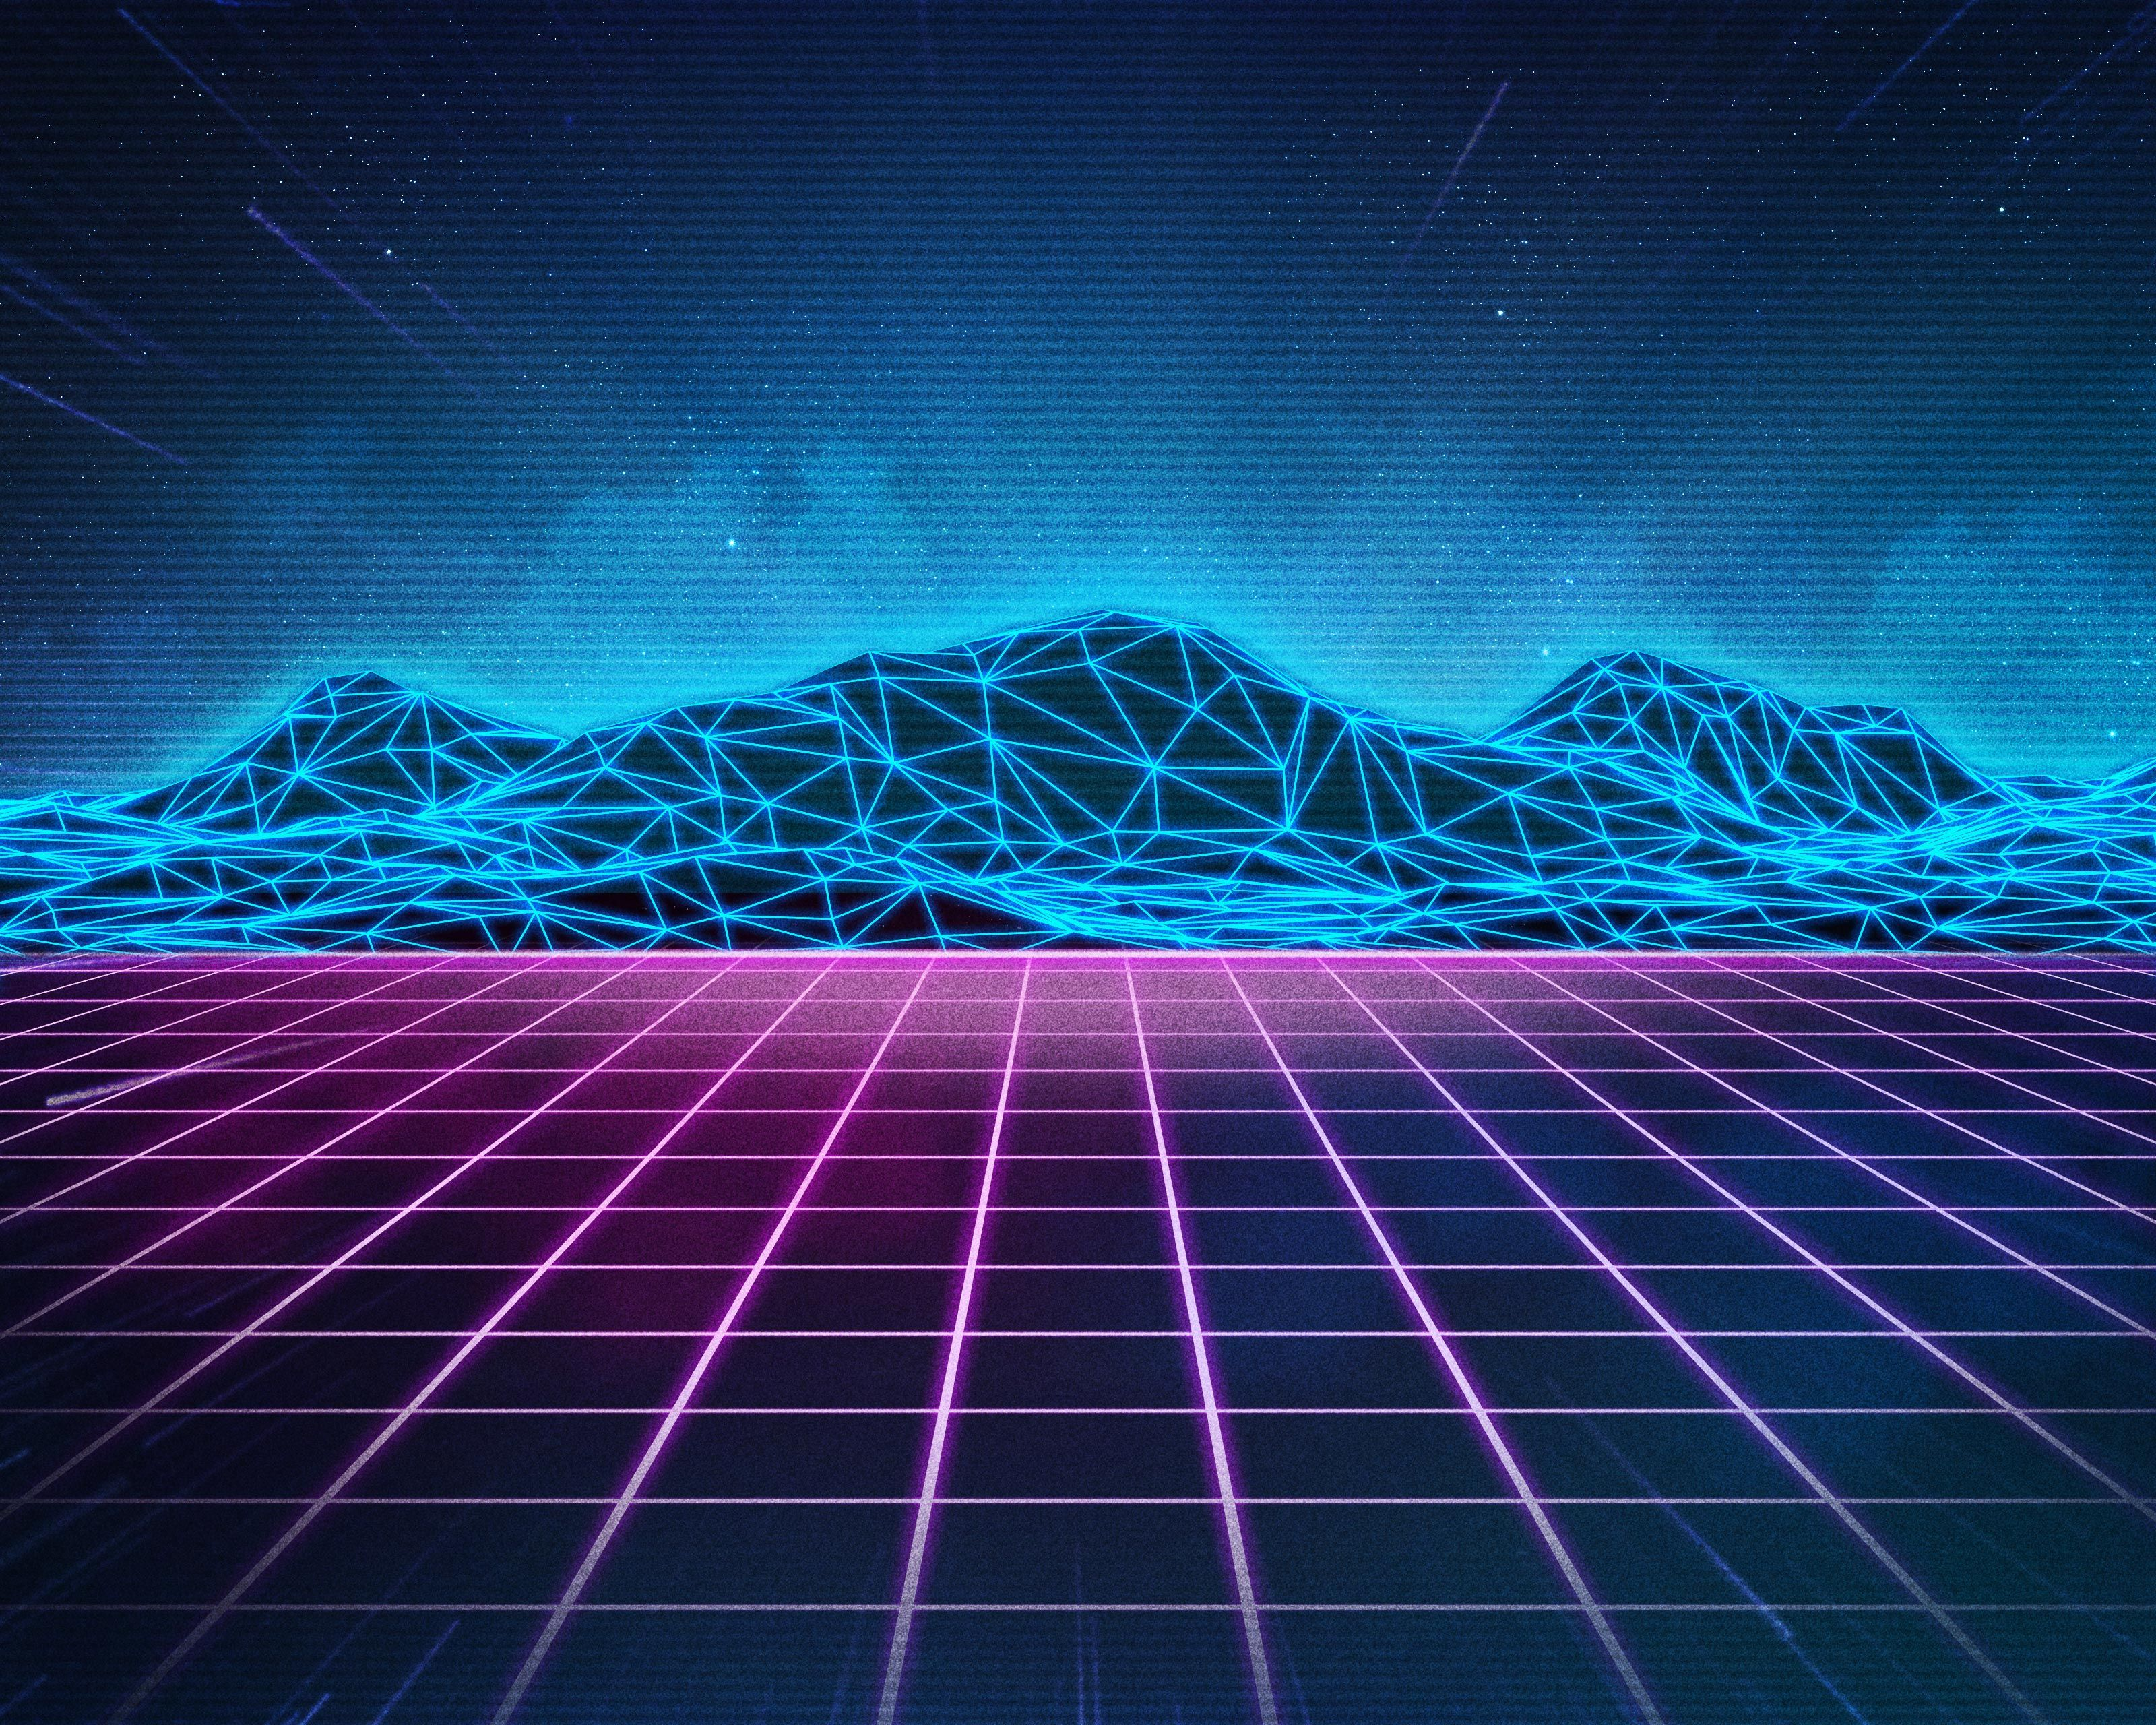 Rad Pack 80 S Themed Hd Wallpapers A Nate Wren A Graphic